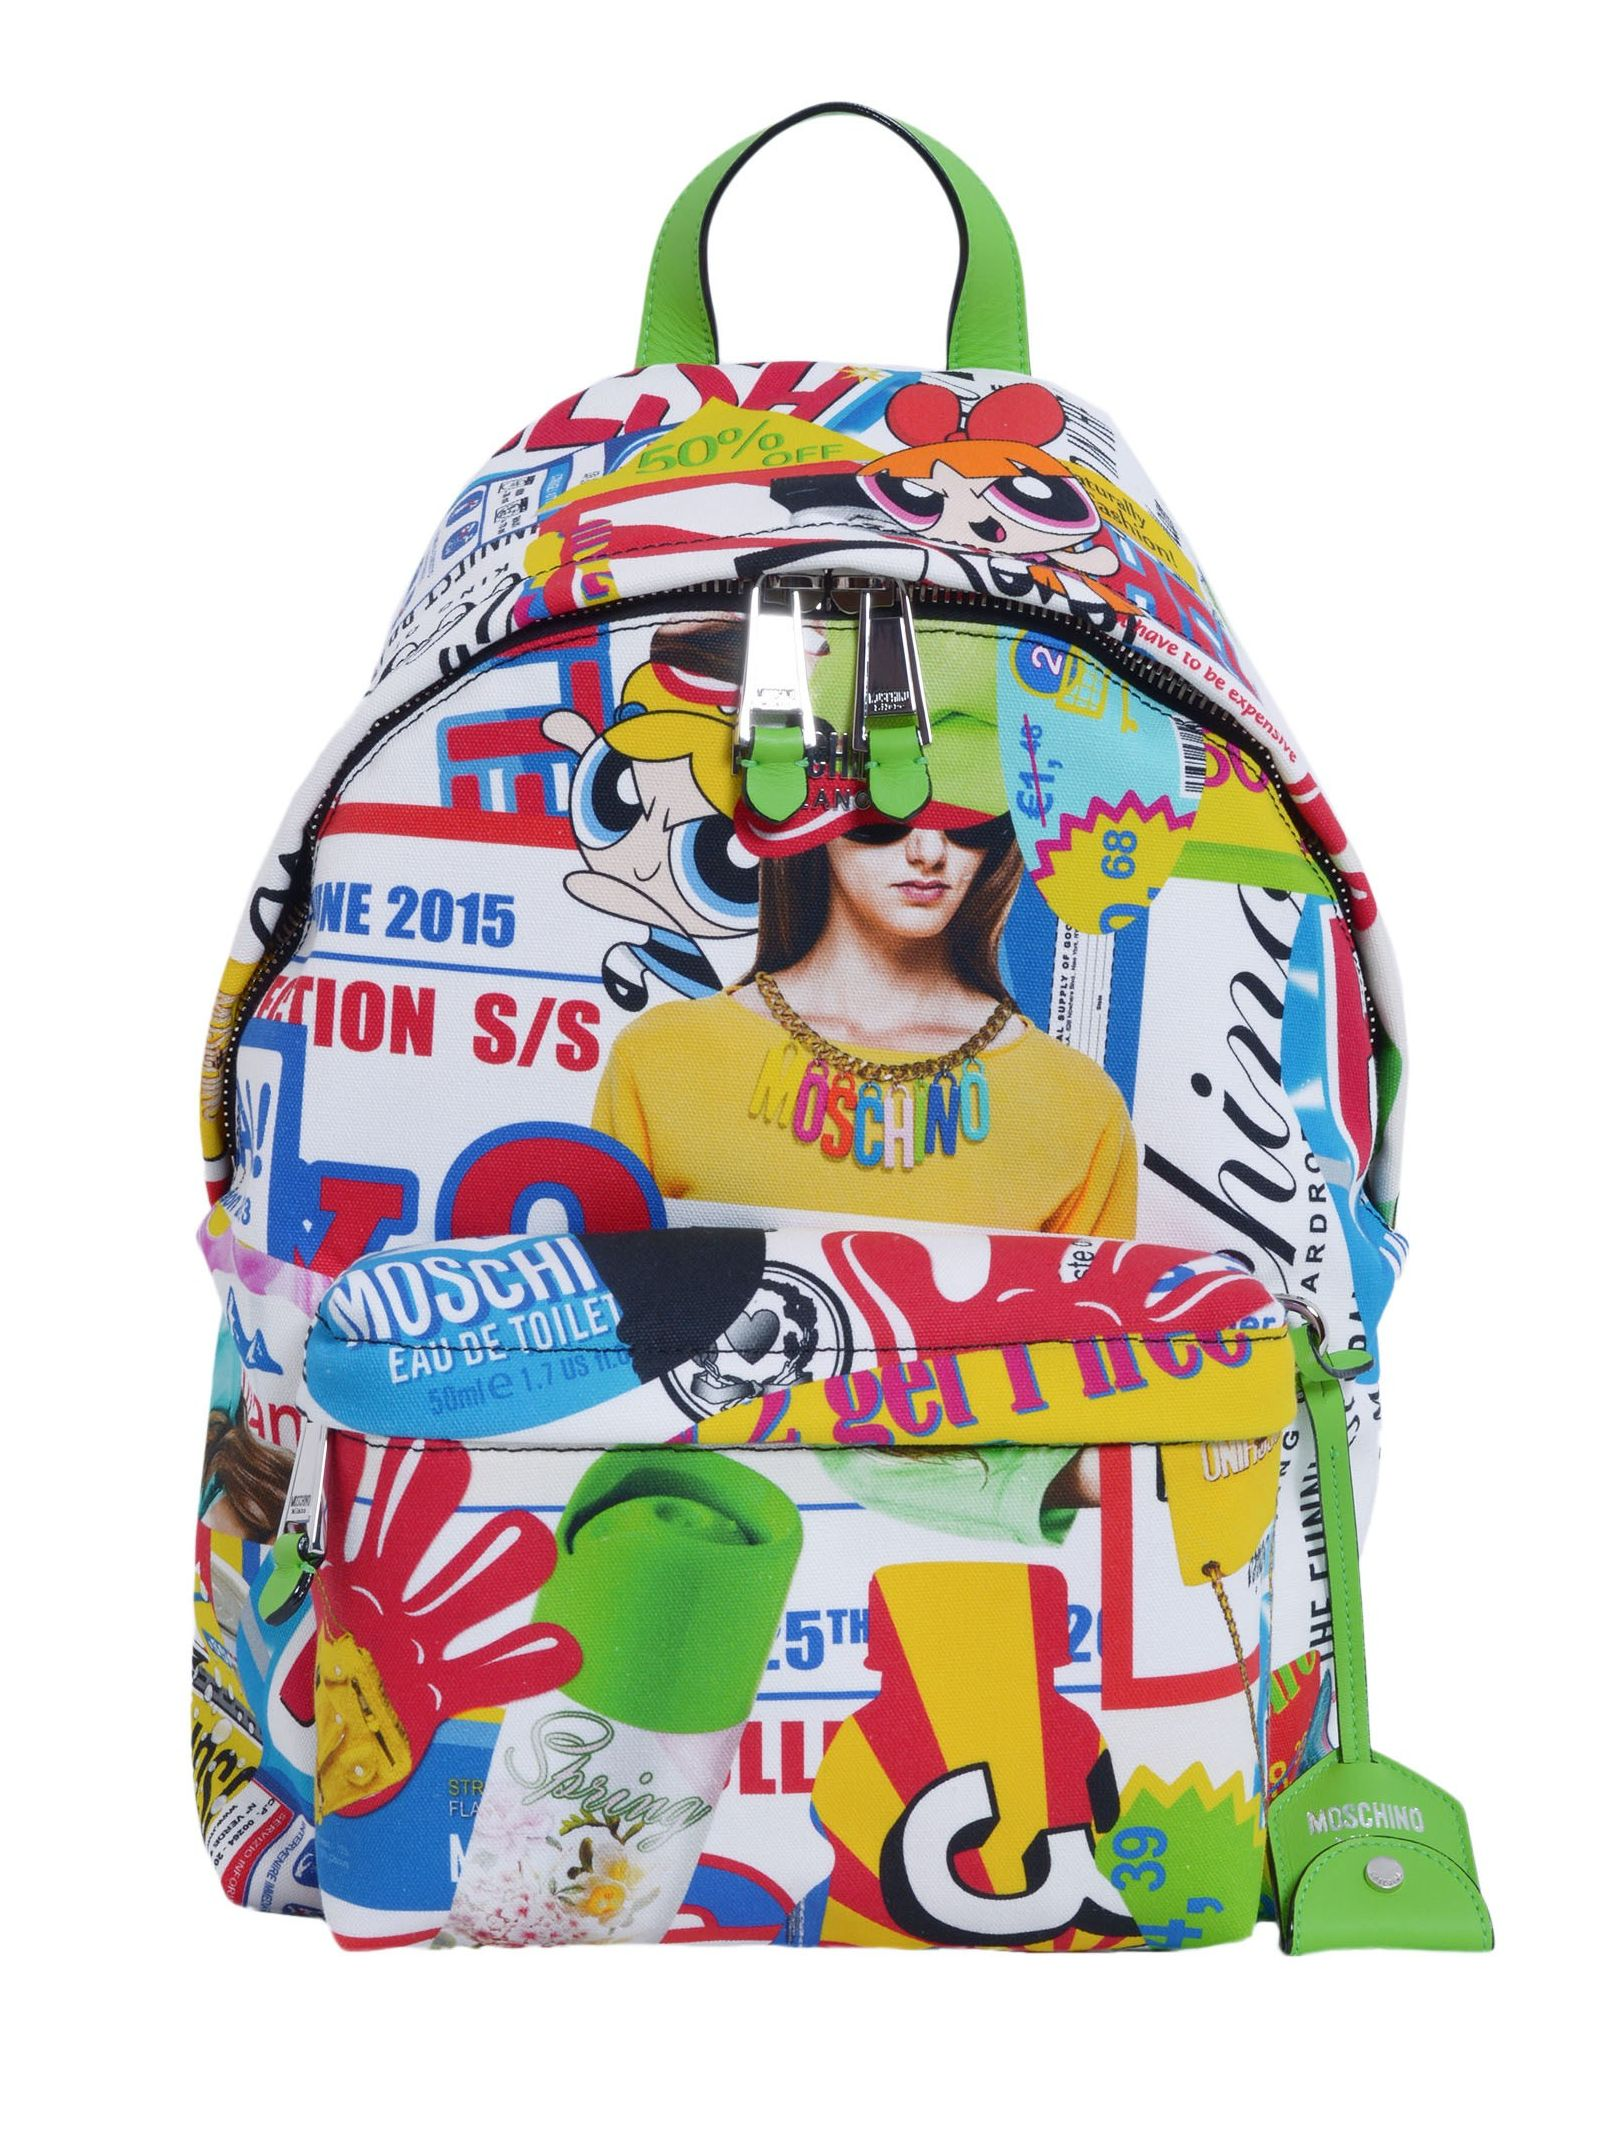 ONE LEATHER HANDLE- ADJUSTABLE SHOULDER STRAP- ZIP CLOSURE- ALL-OVER FANTASY PRINT- ONE FRONT ZIP POCKET- ONE INTERNAL ZIP POCKET- ONE INTERNAL PATCH POCKET- LINING- SIZE: 42 X 30 X 12. 5 CM- 44% COTTON, 41% PA, 15% POLYURETHANE - MADE IN ITALY